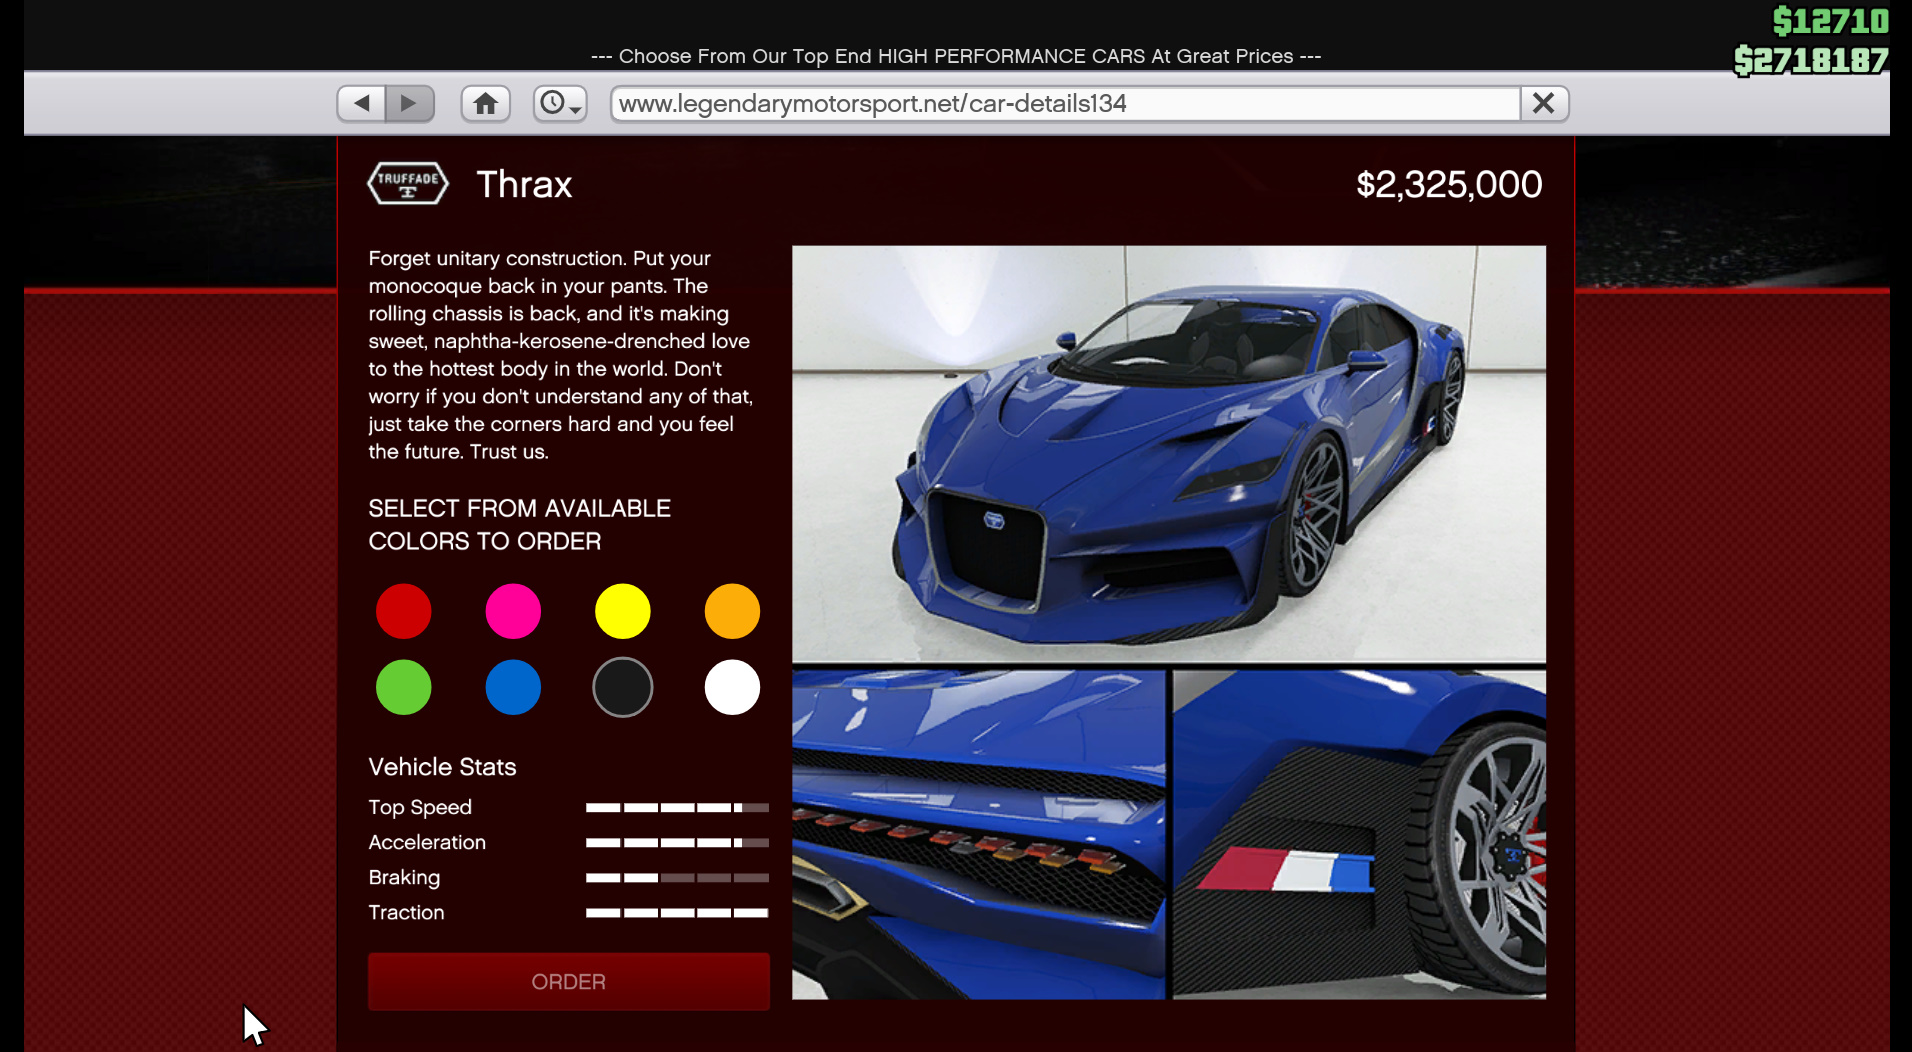 Image showing the new Thrax car from the GTA Online casino update.